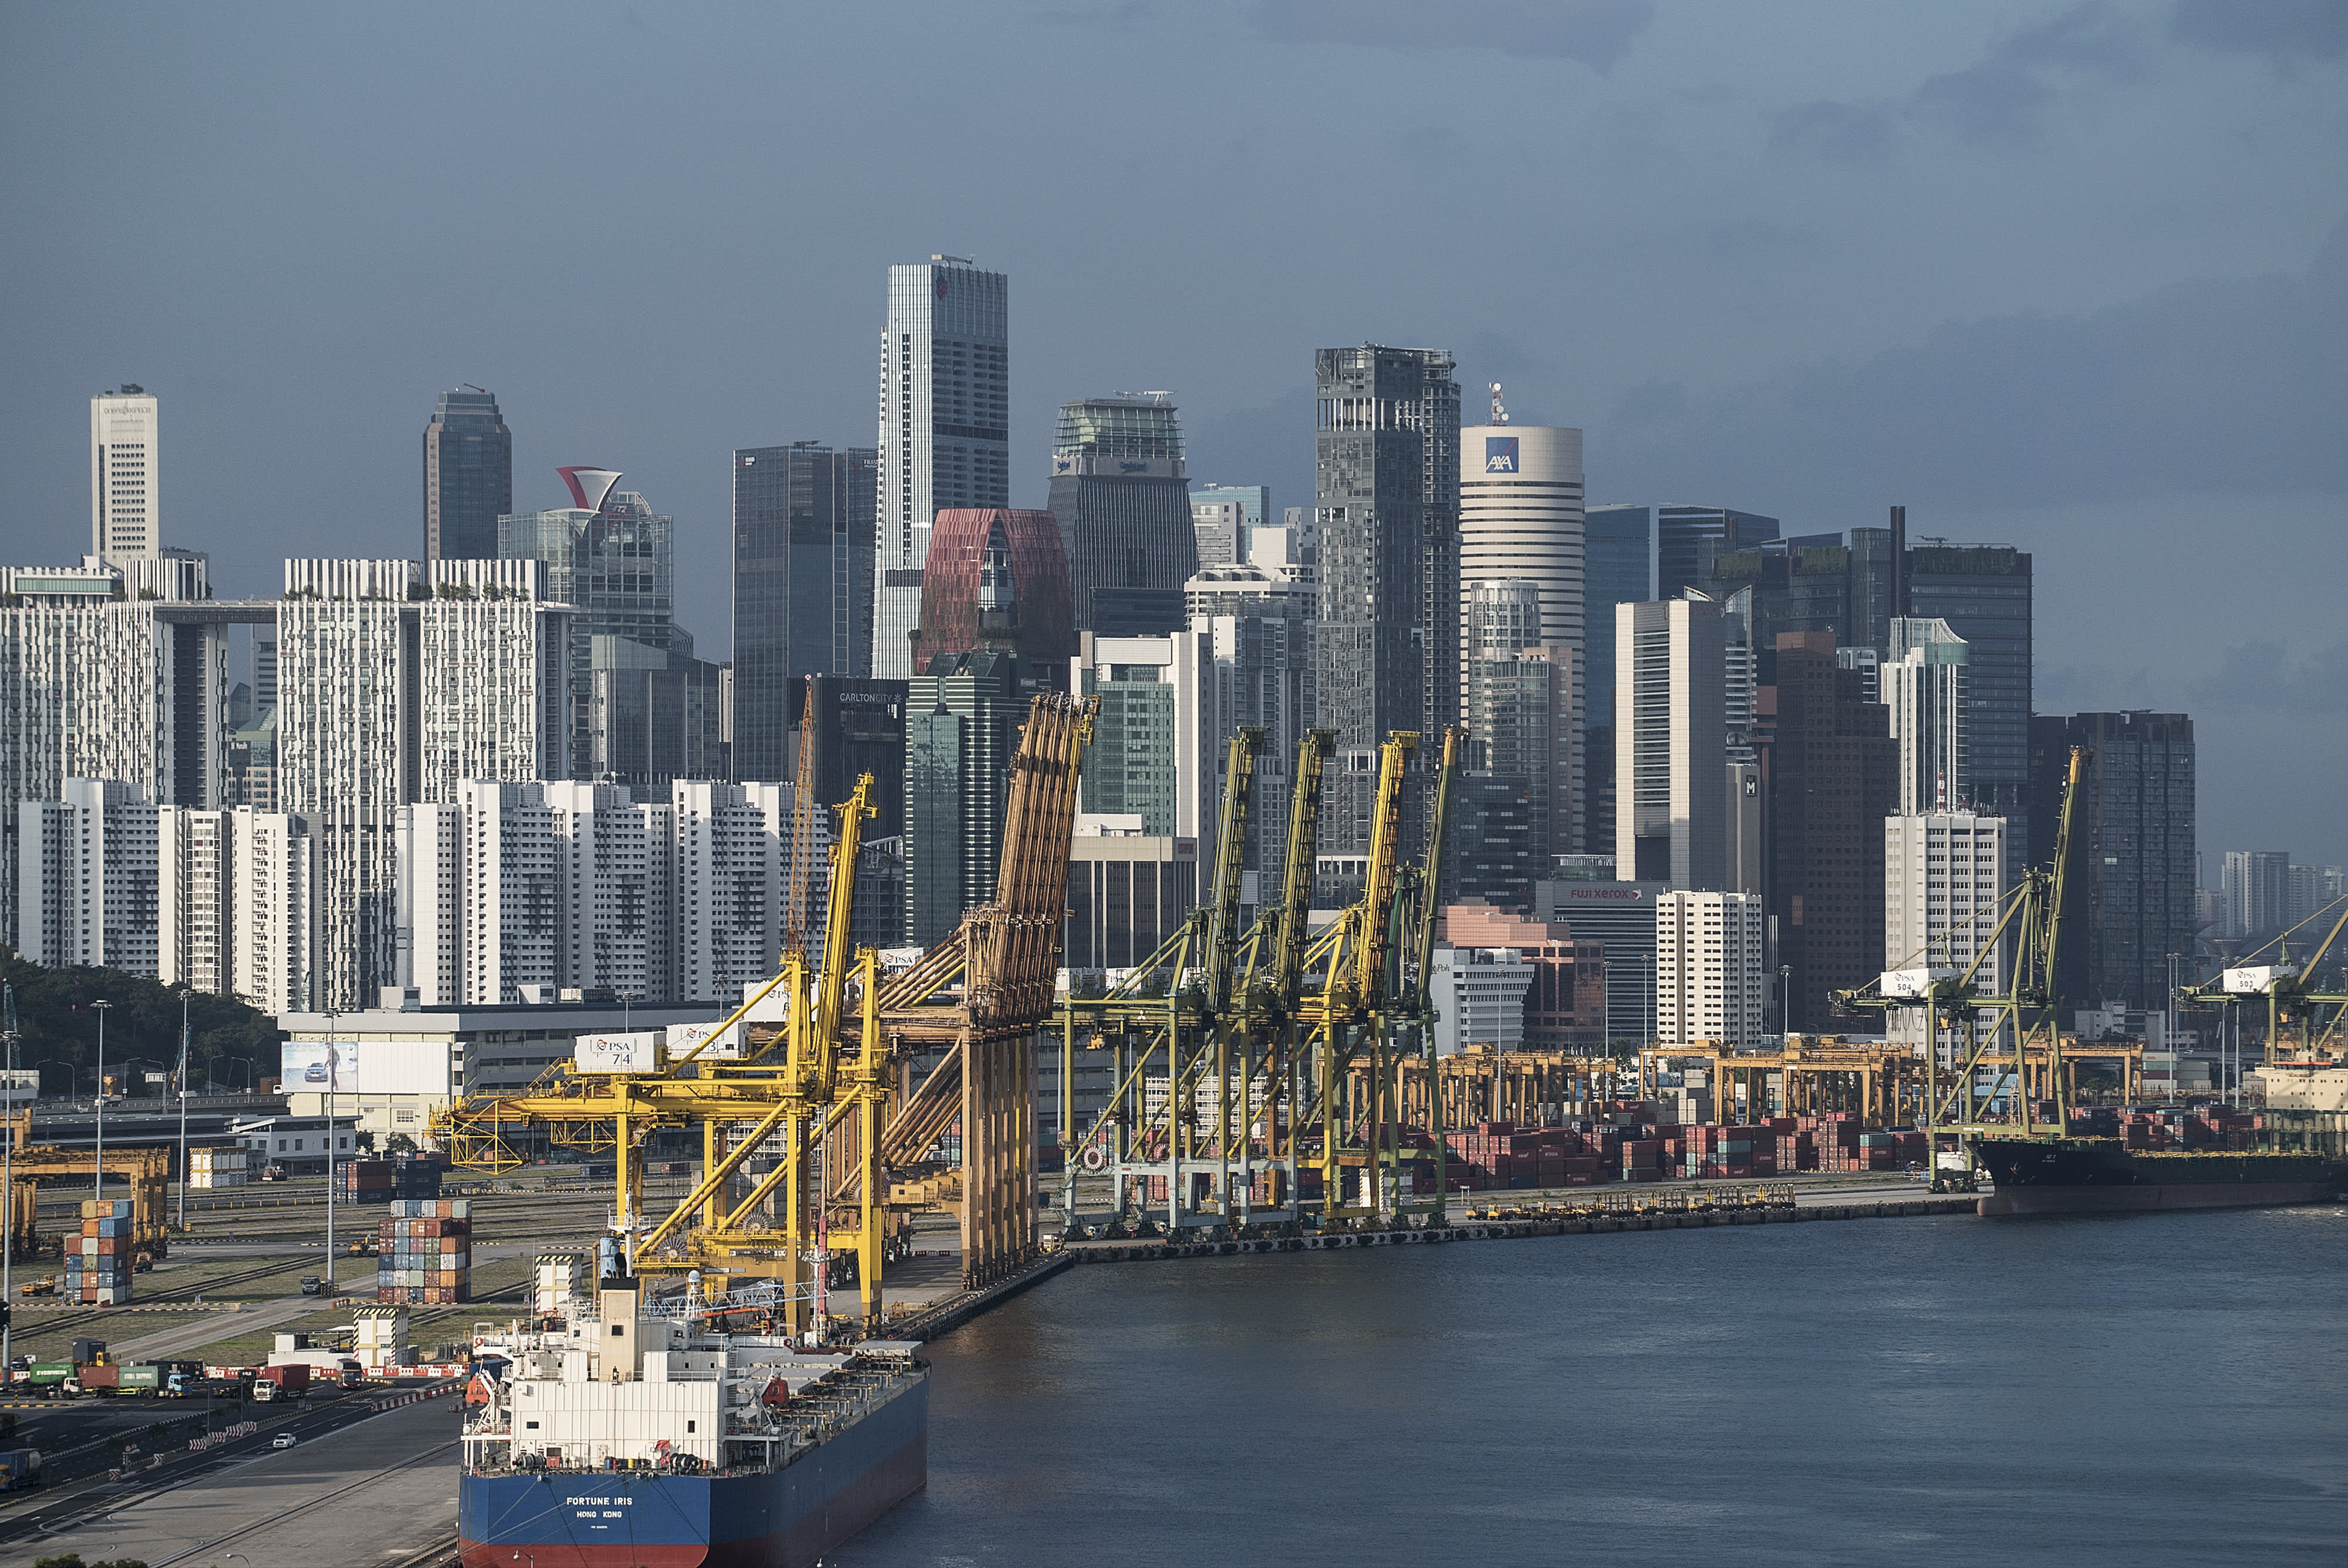 Singapore's not going into a recession 'at this point,' trade minister says